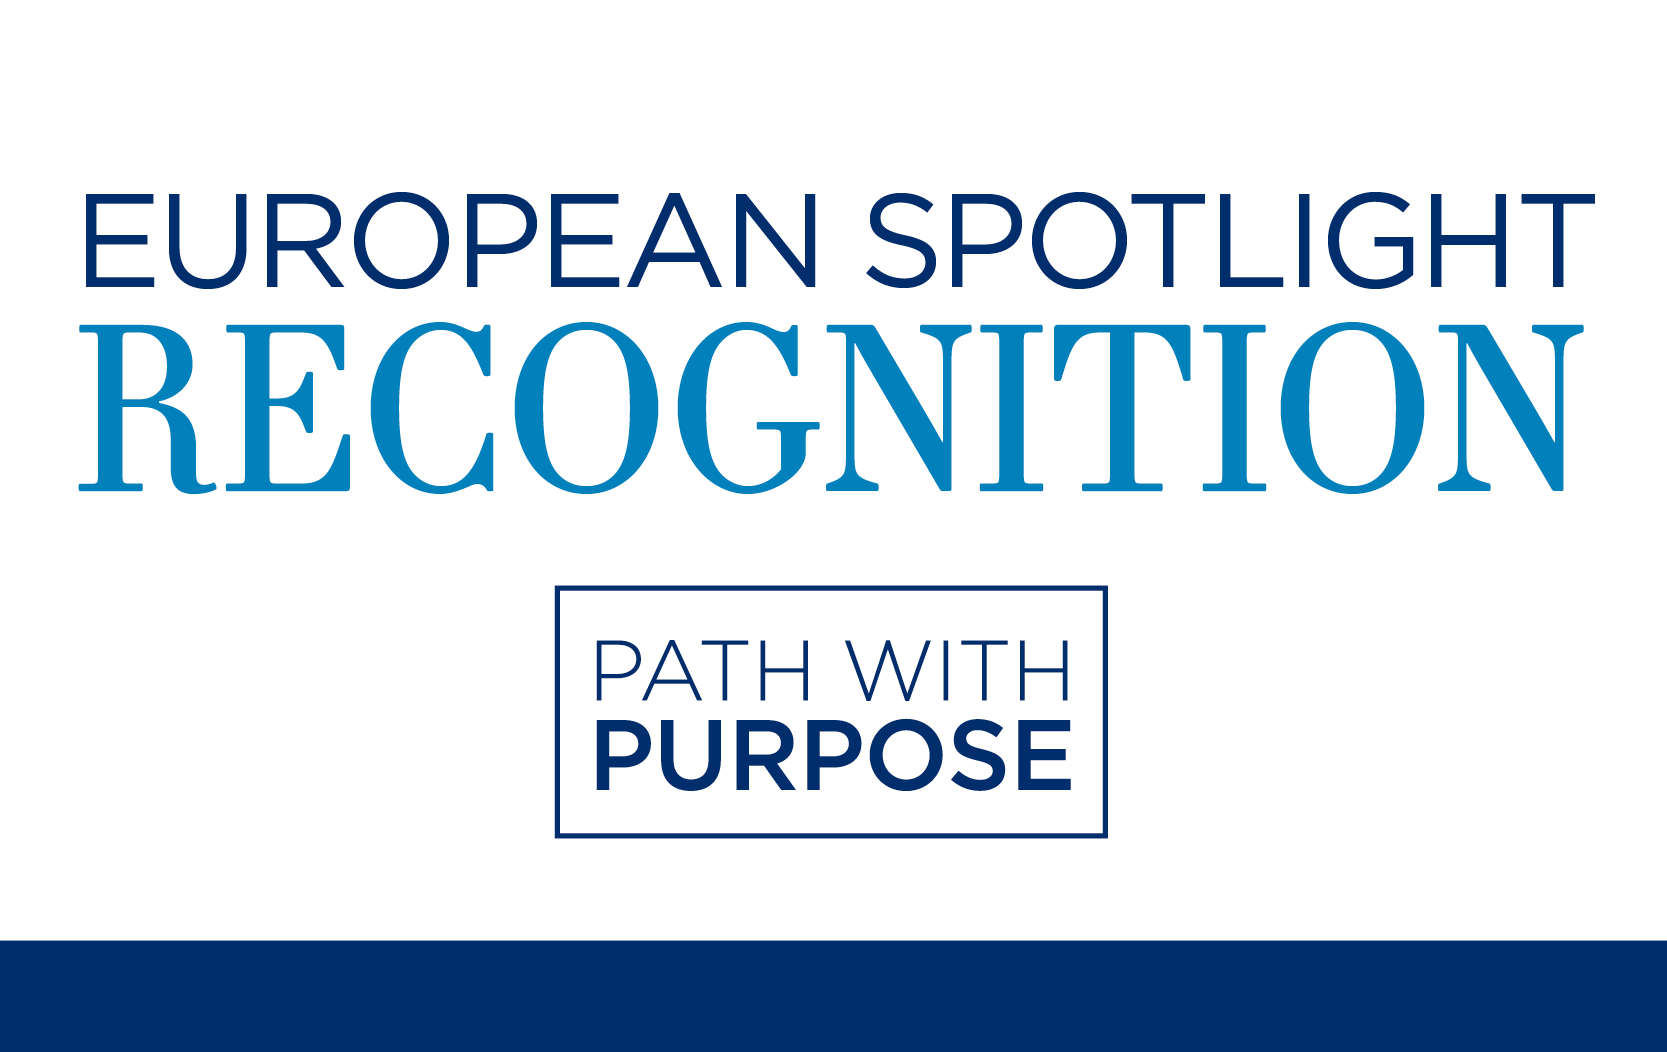 Isagenix European Spotlight Recognition August